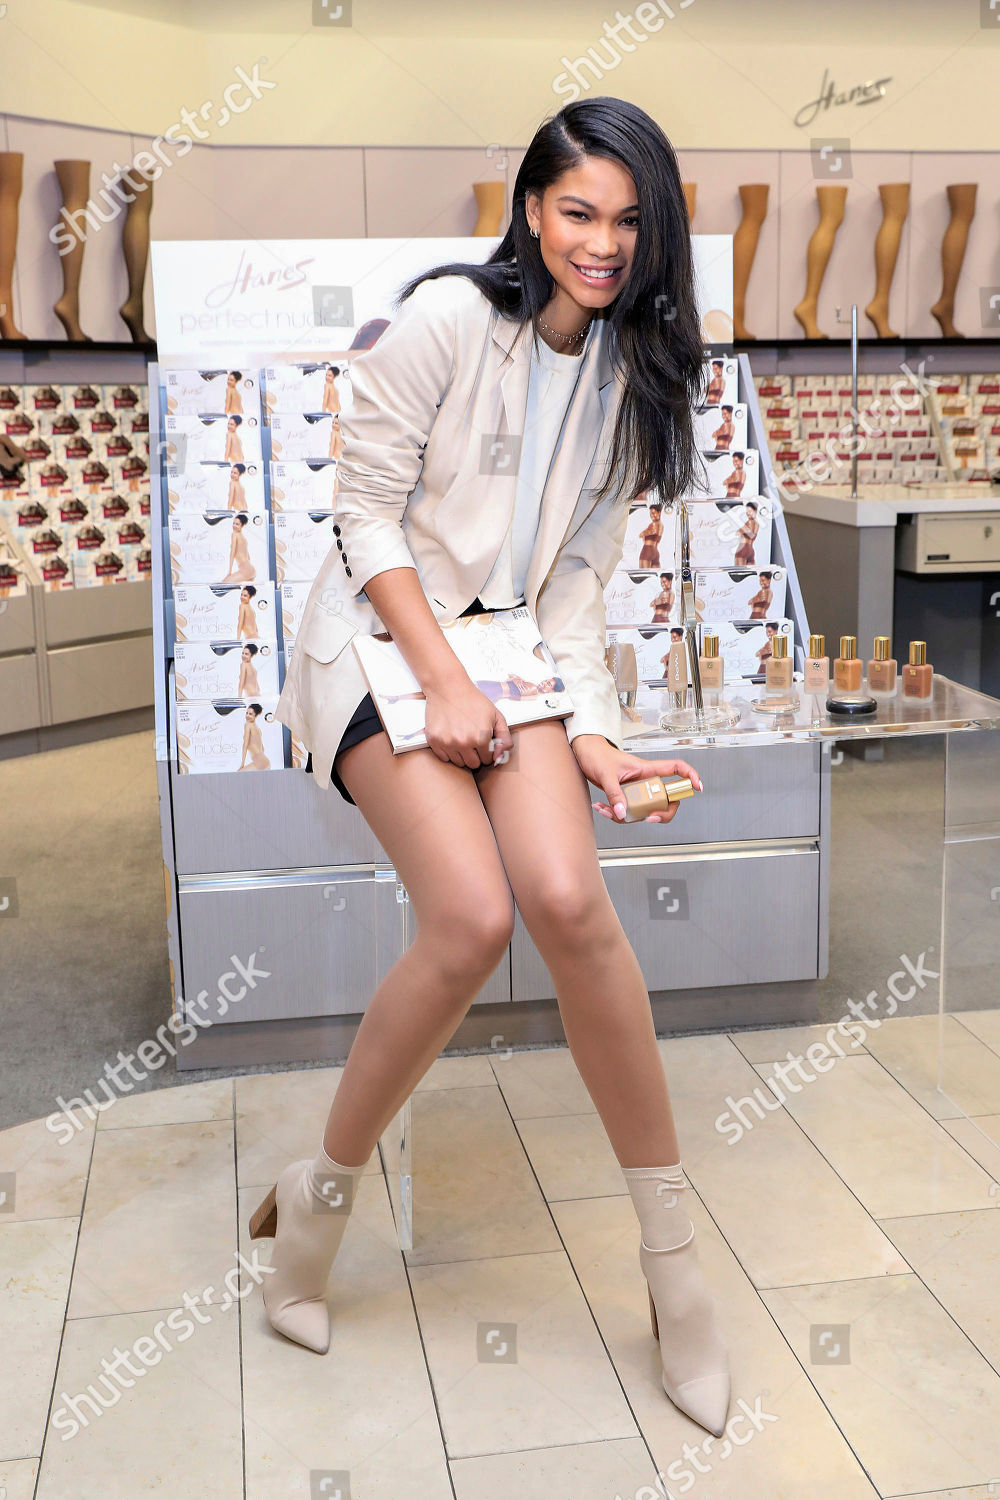 Chanel Iman United States Chanel Iman United States new picture